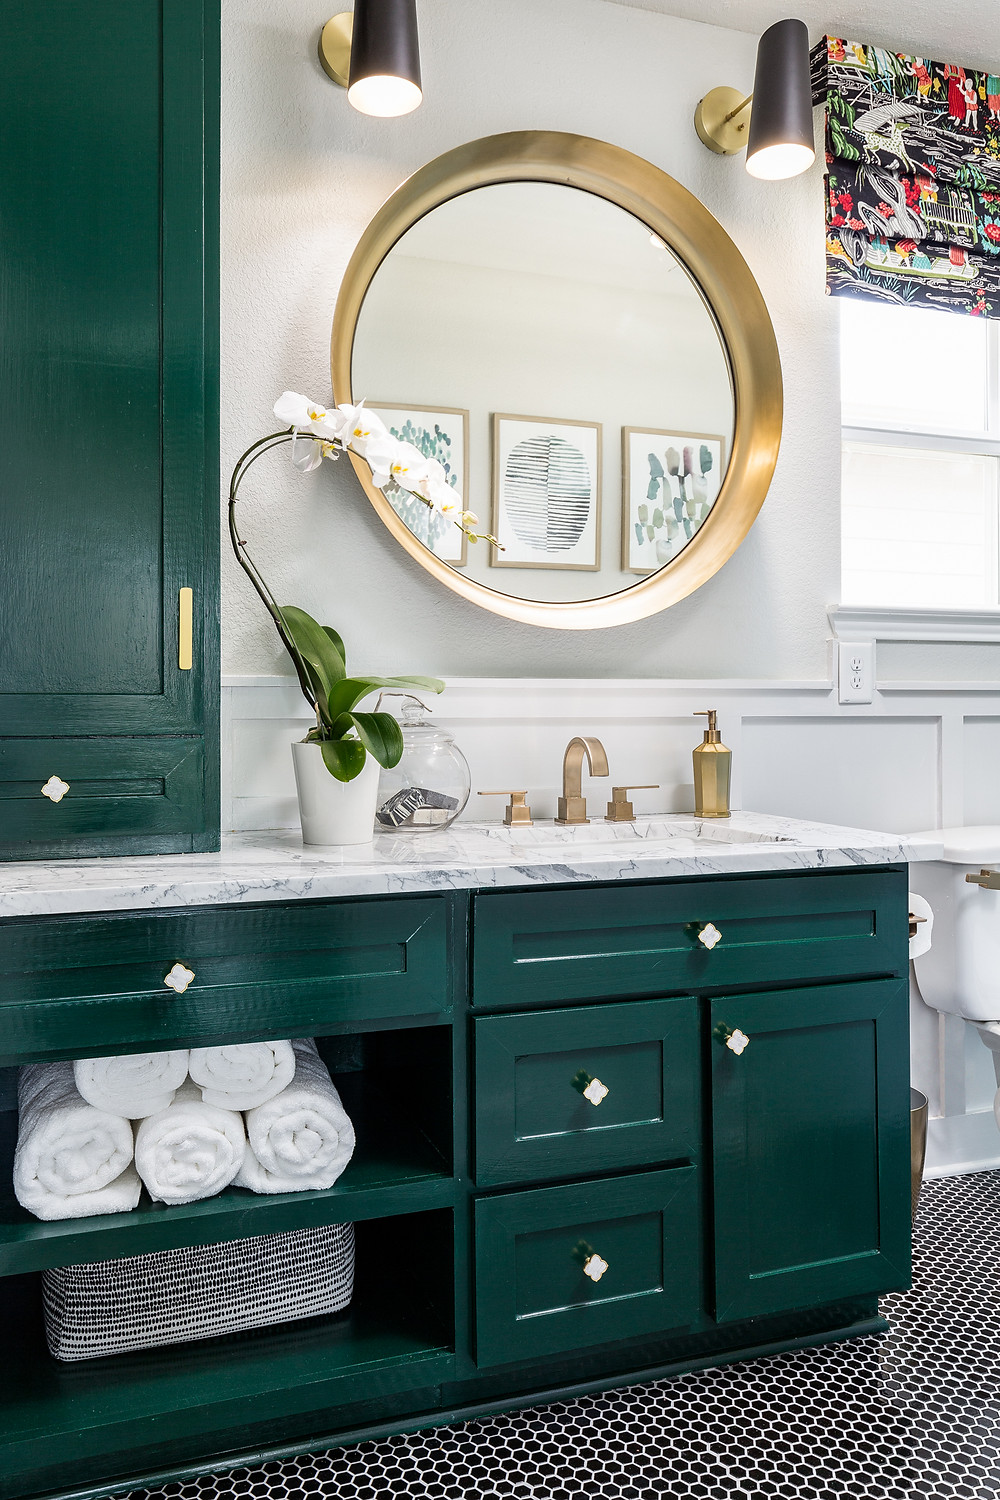 Guest Bathroom With Green Painted Cabinets and Marble Countertop